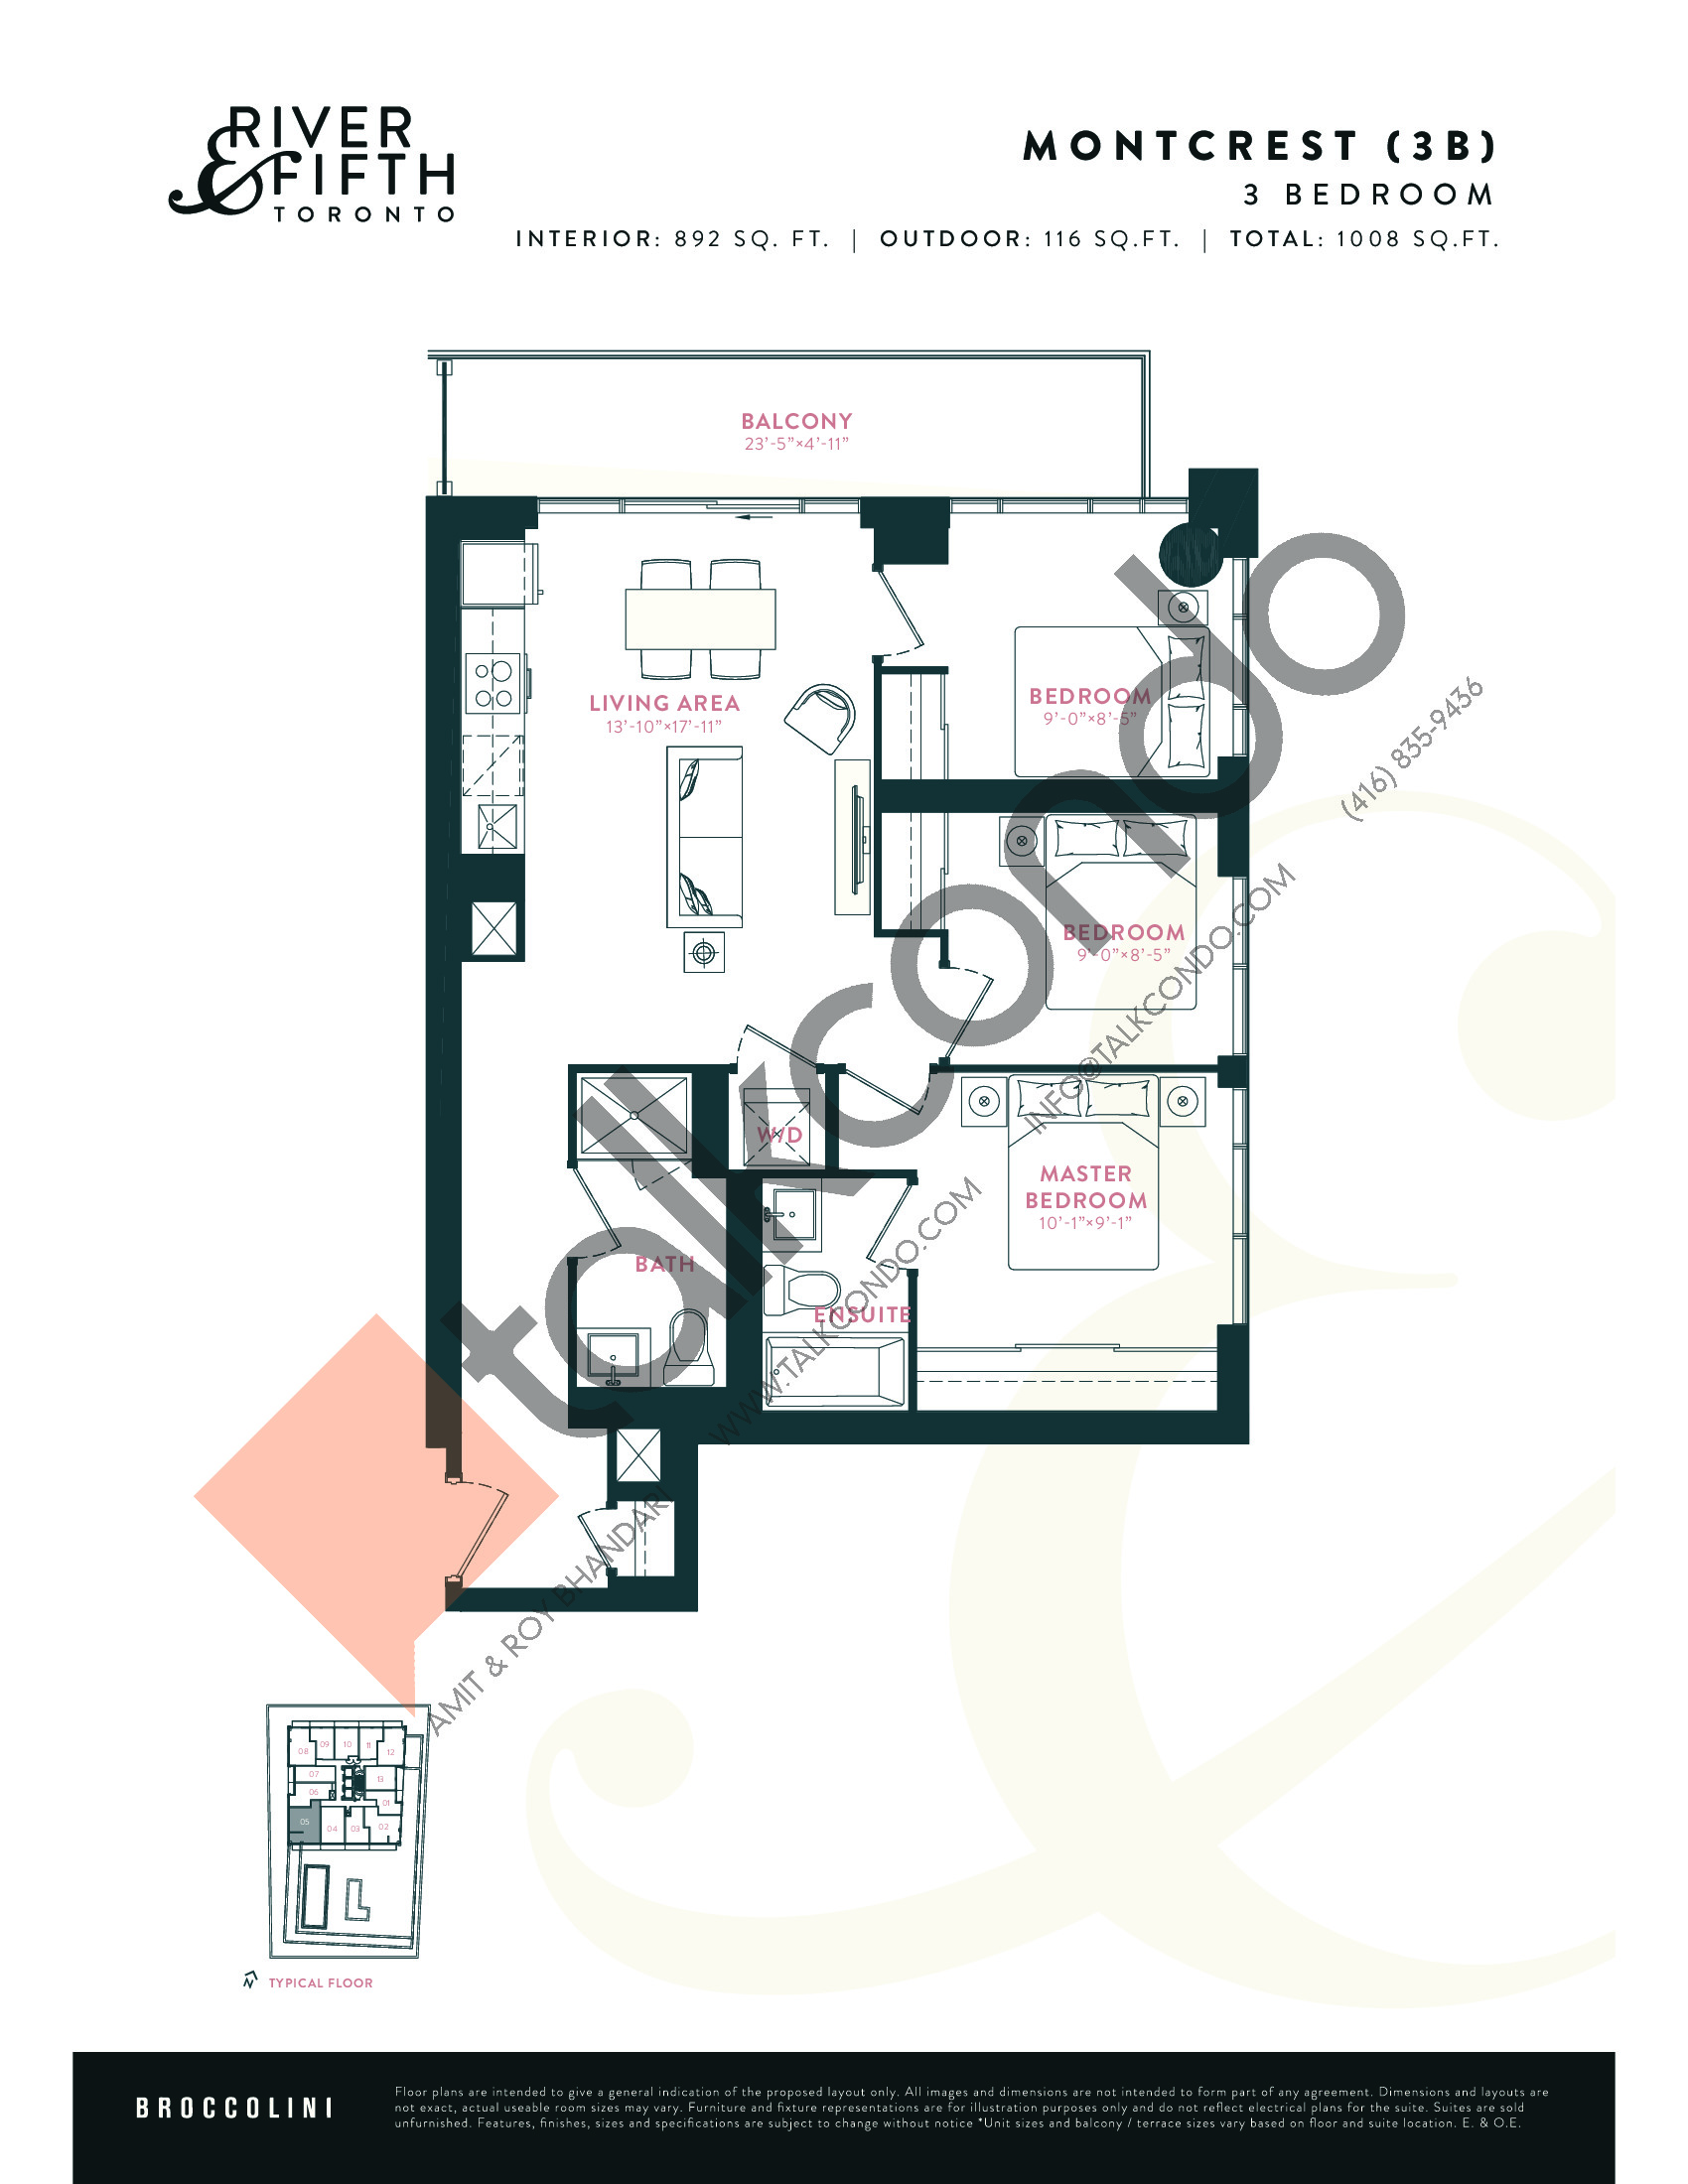 Montcrest (3B) Floor Plan at River & Fifth Condos - 892 sq.ft